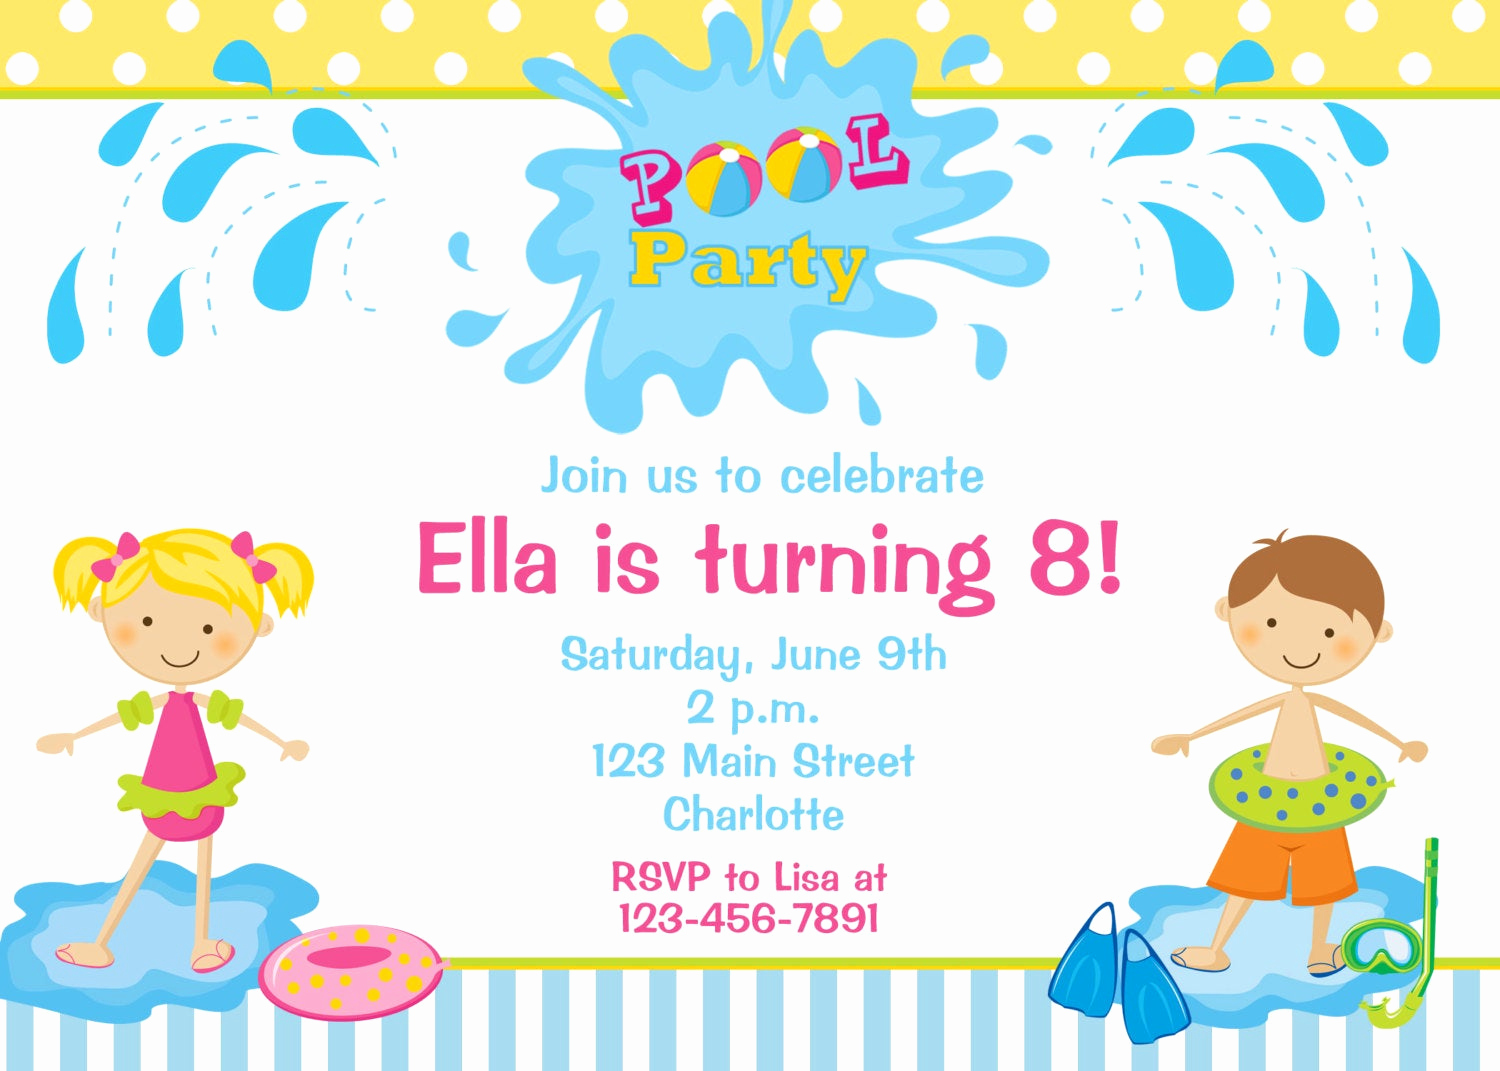 Kids Pool Party Invitation Awesome Pool Party Birthday Invitation Pool Party by thebutterflypress